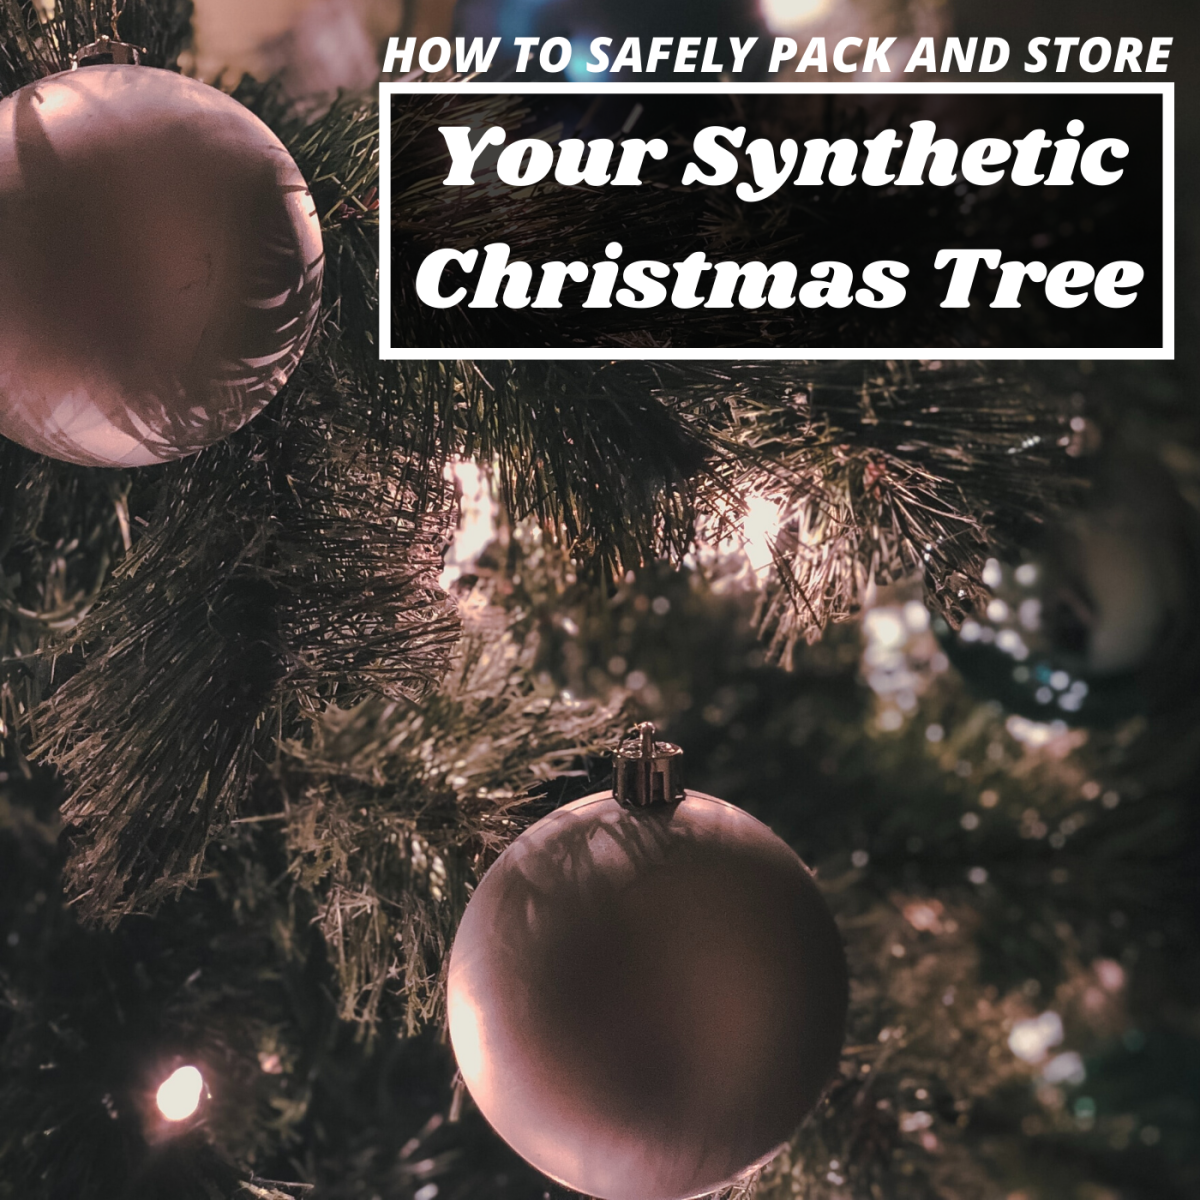 Learn how to keep your synthetic tree in good condition by storing it safely after the holidays.